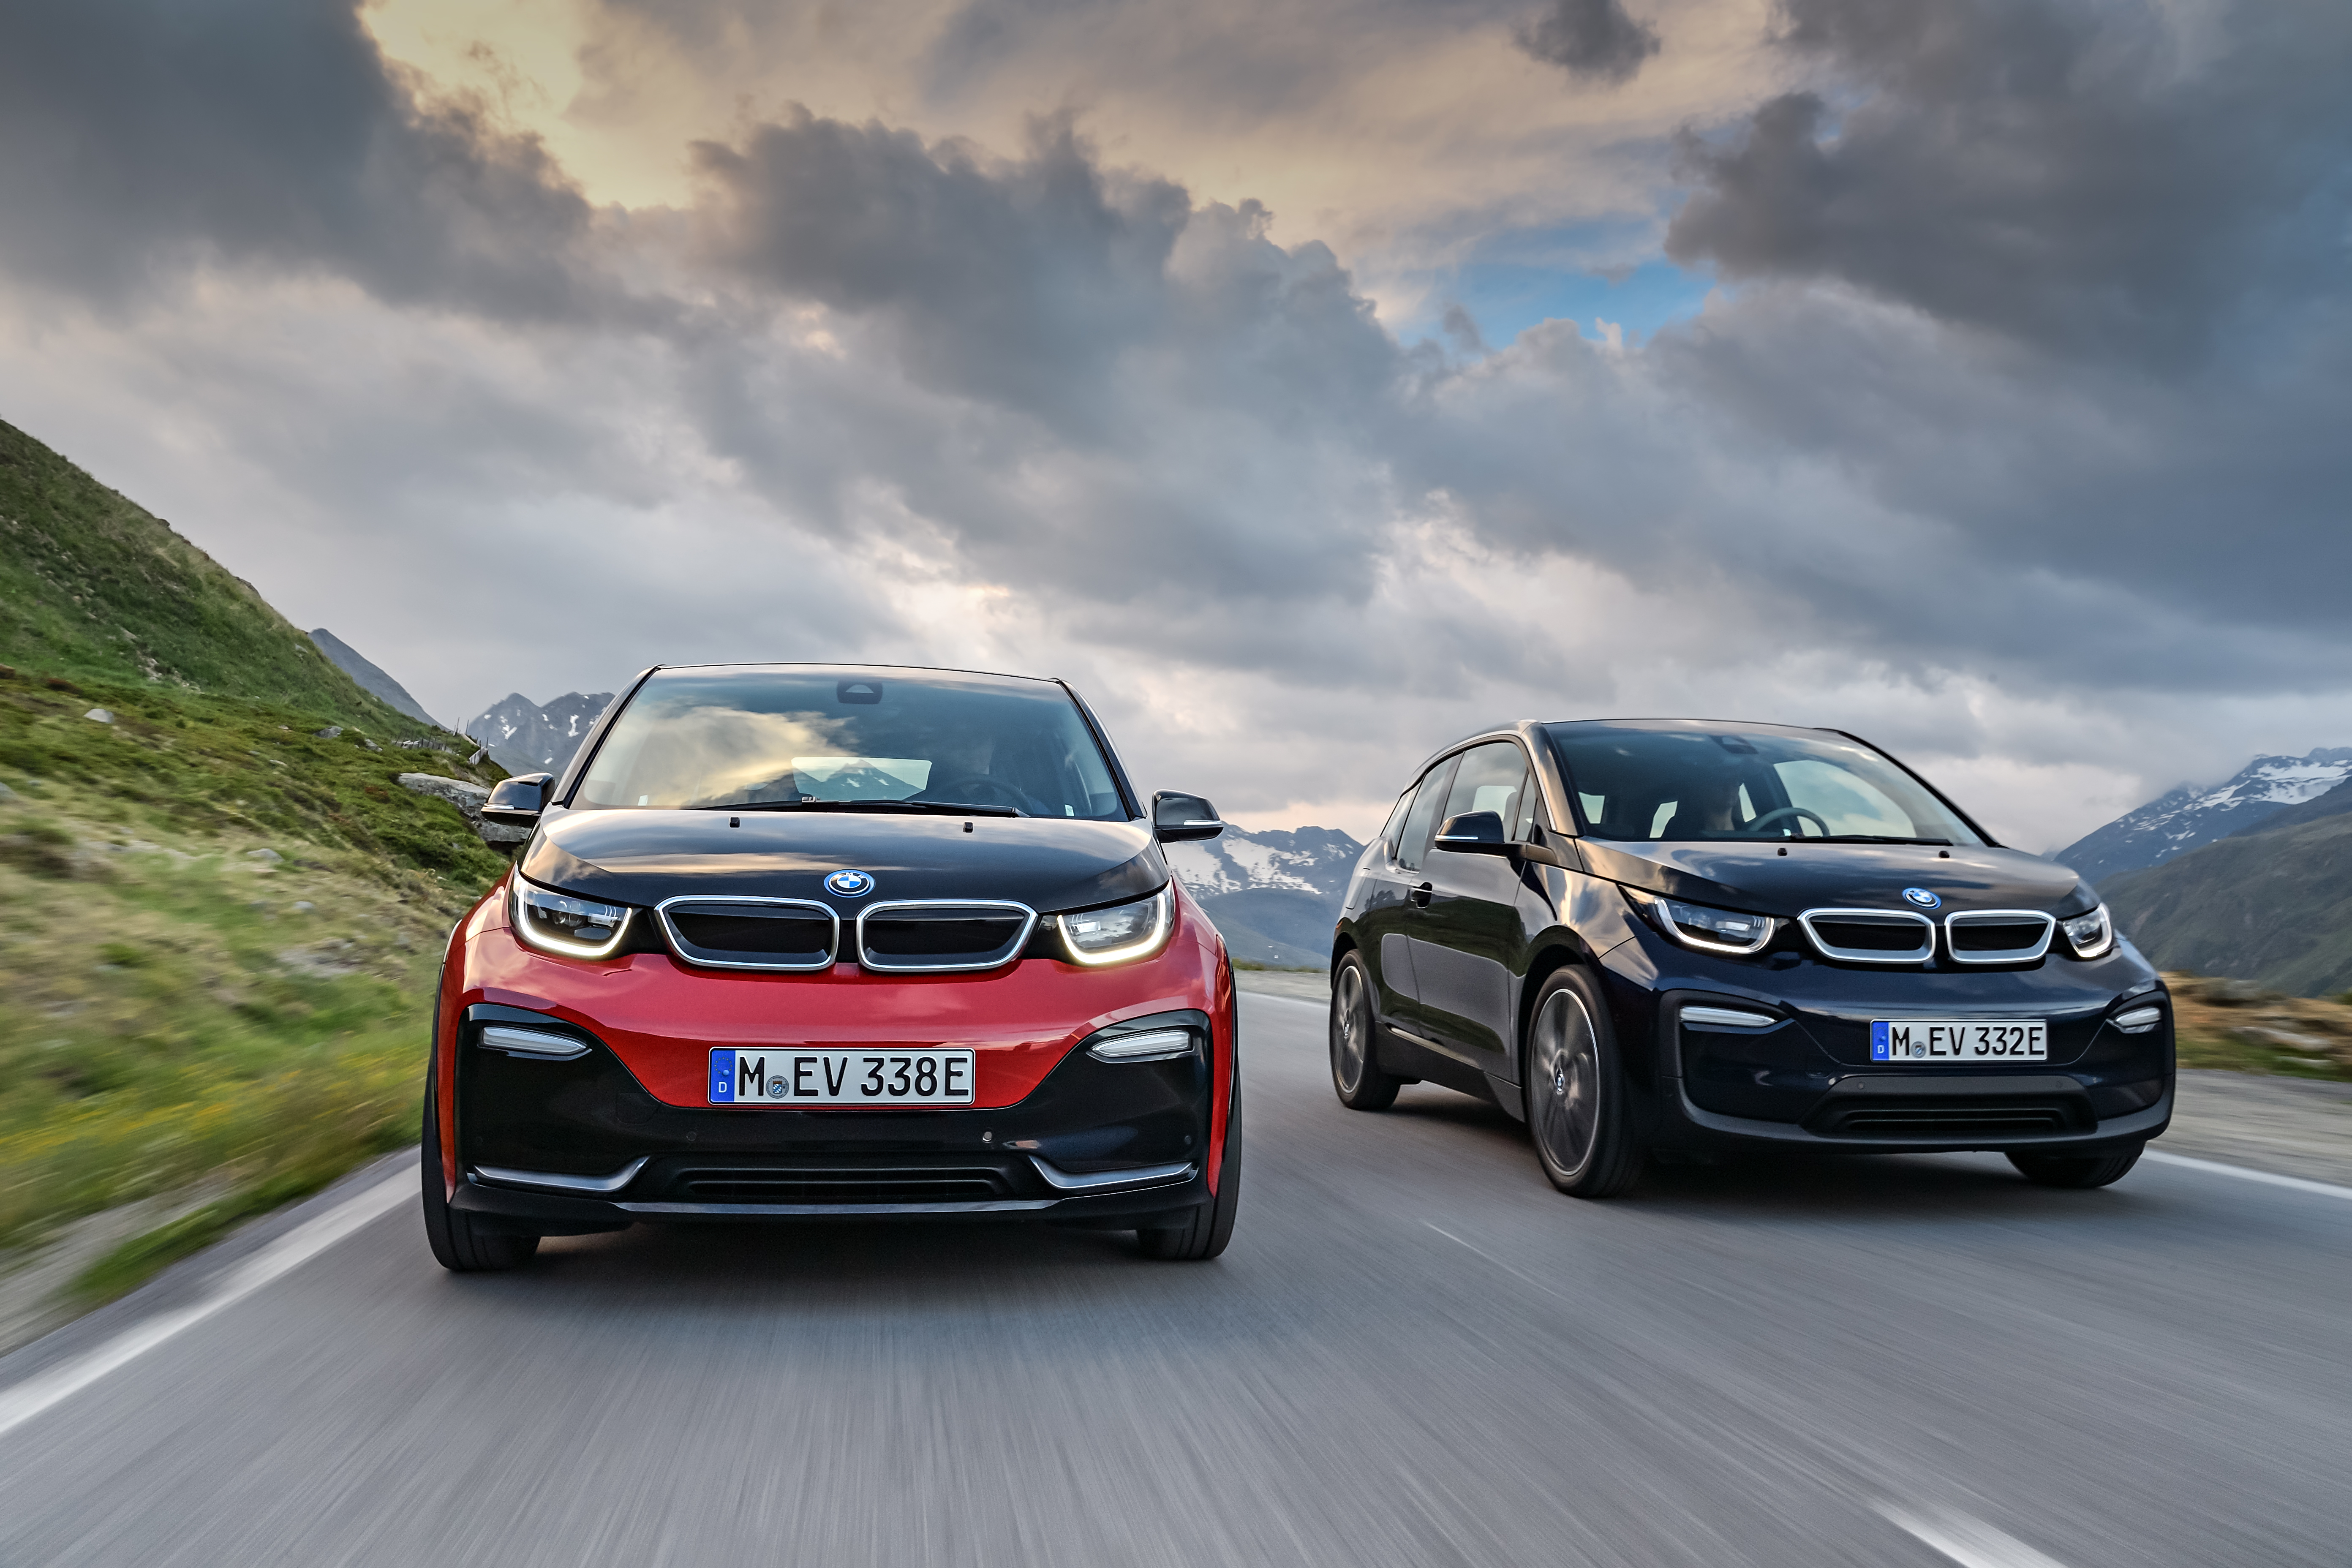 Introducing the new BMW i3s